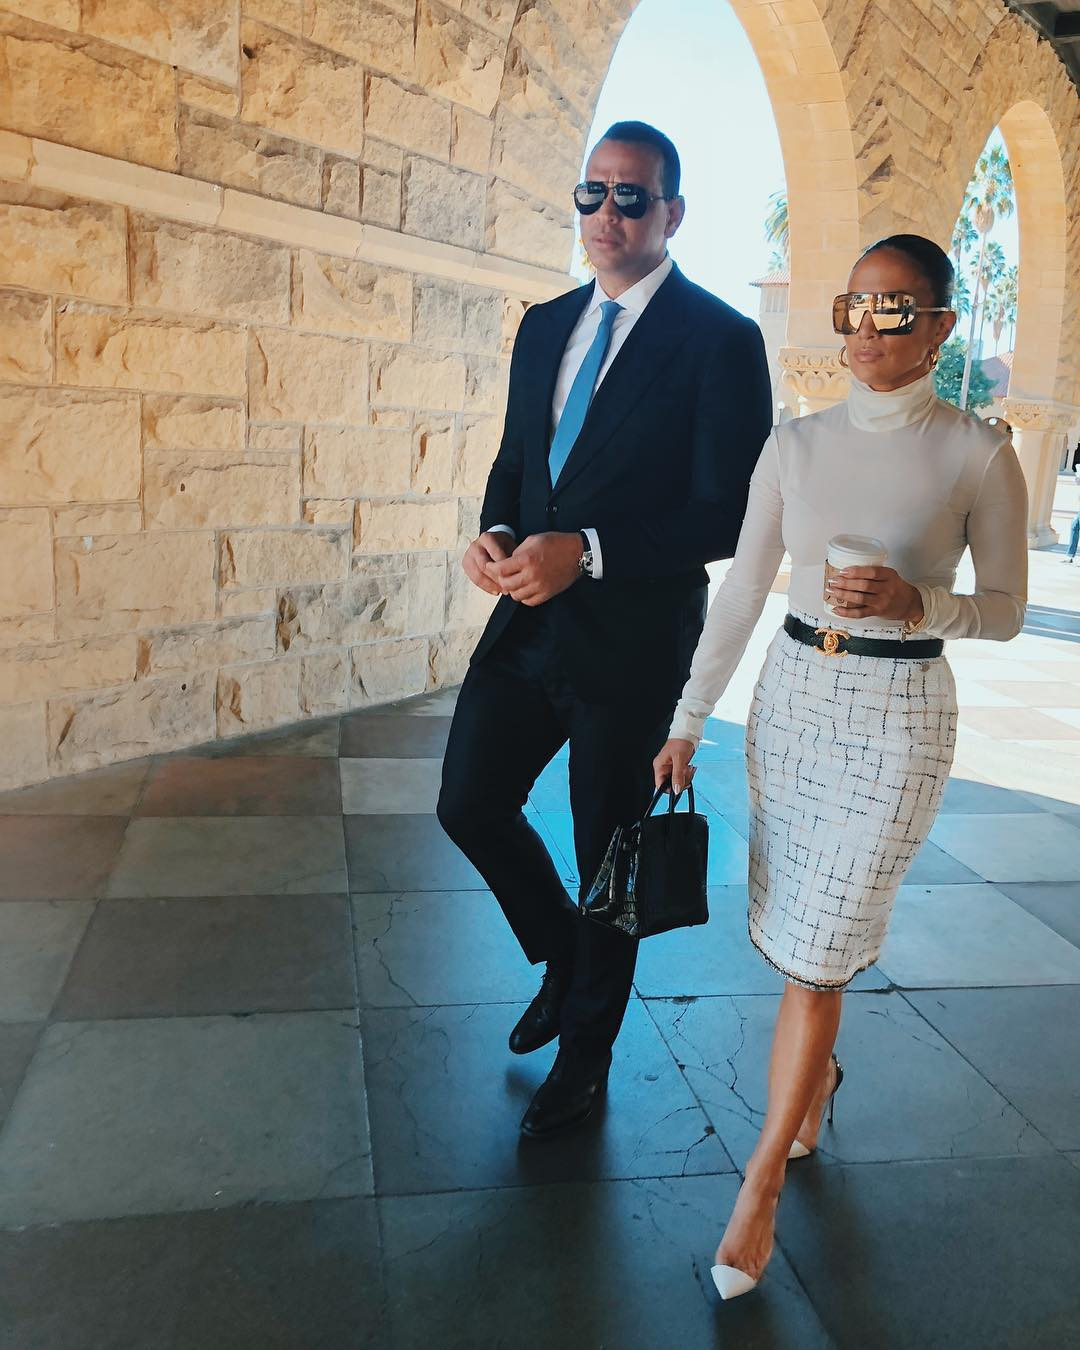 Jennifer Lopez With Sleek Back Hair, Oversized Mirrored Sunglasses And White Look 2019